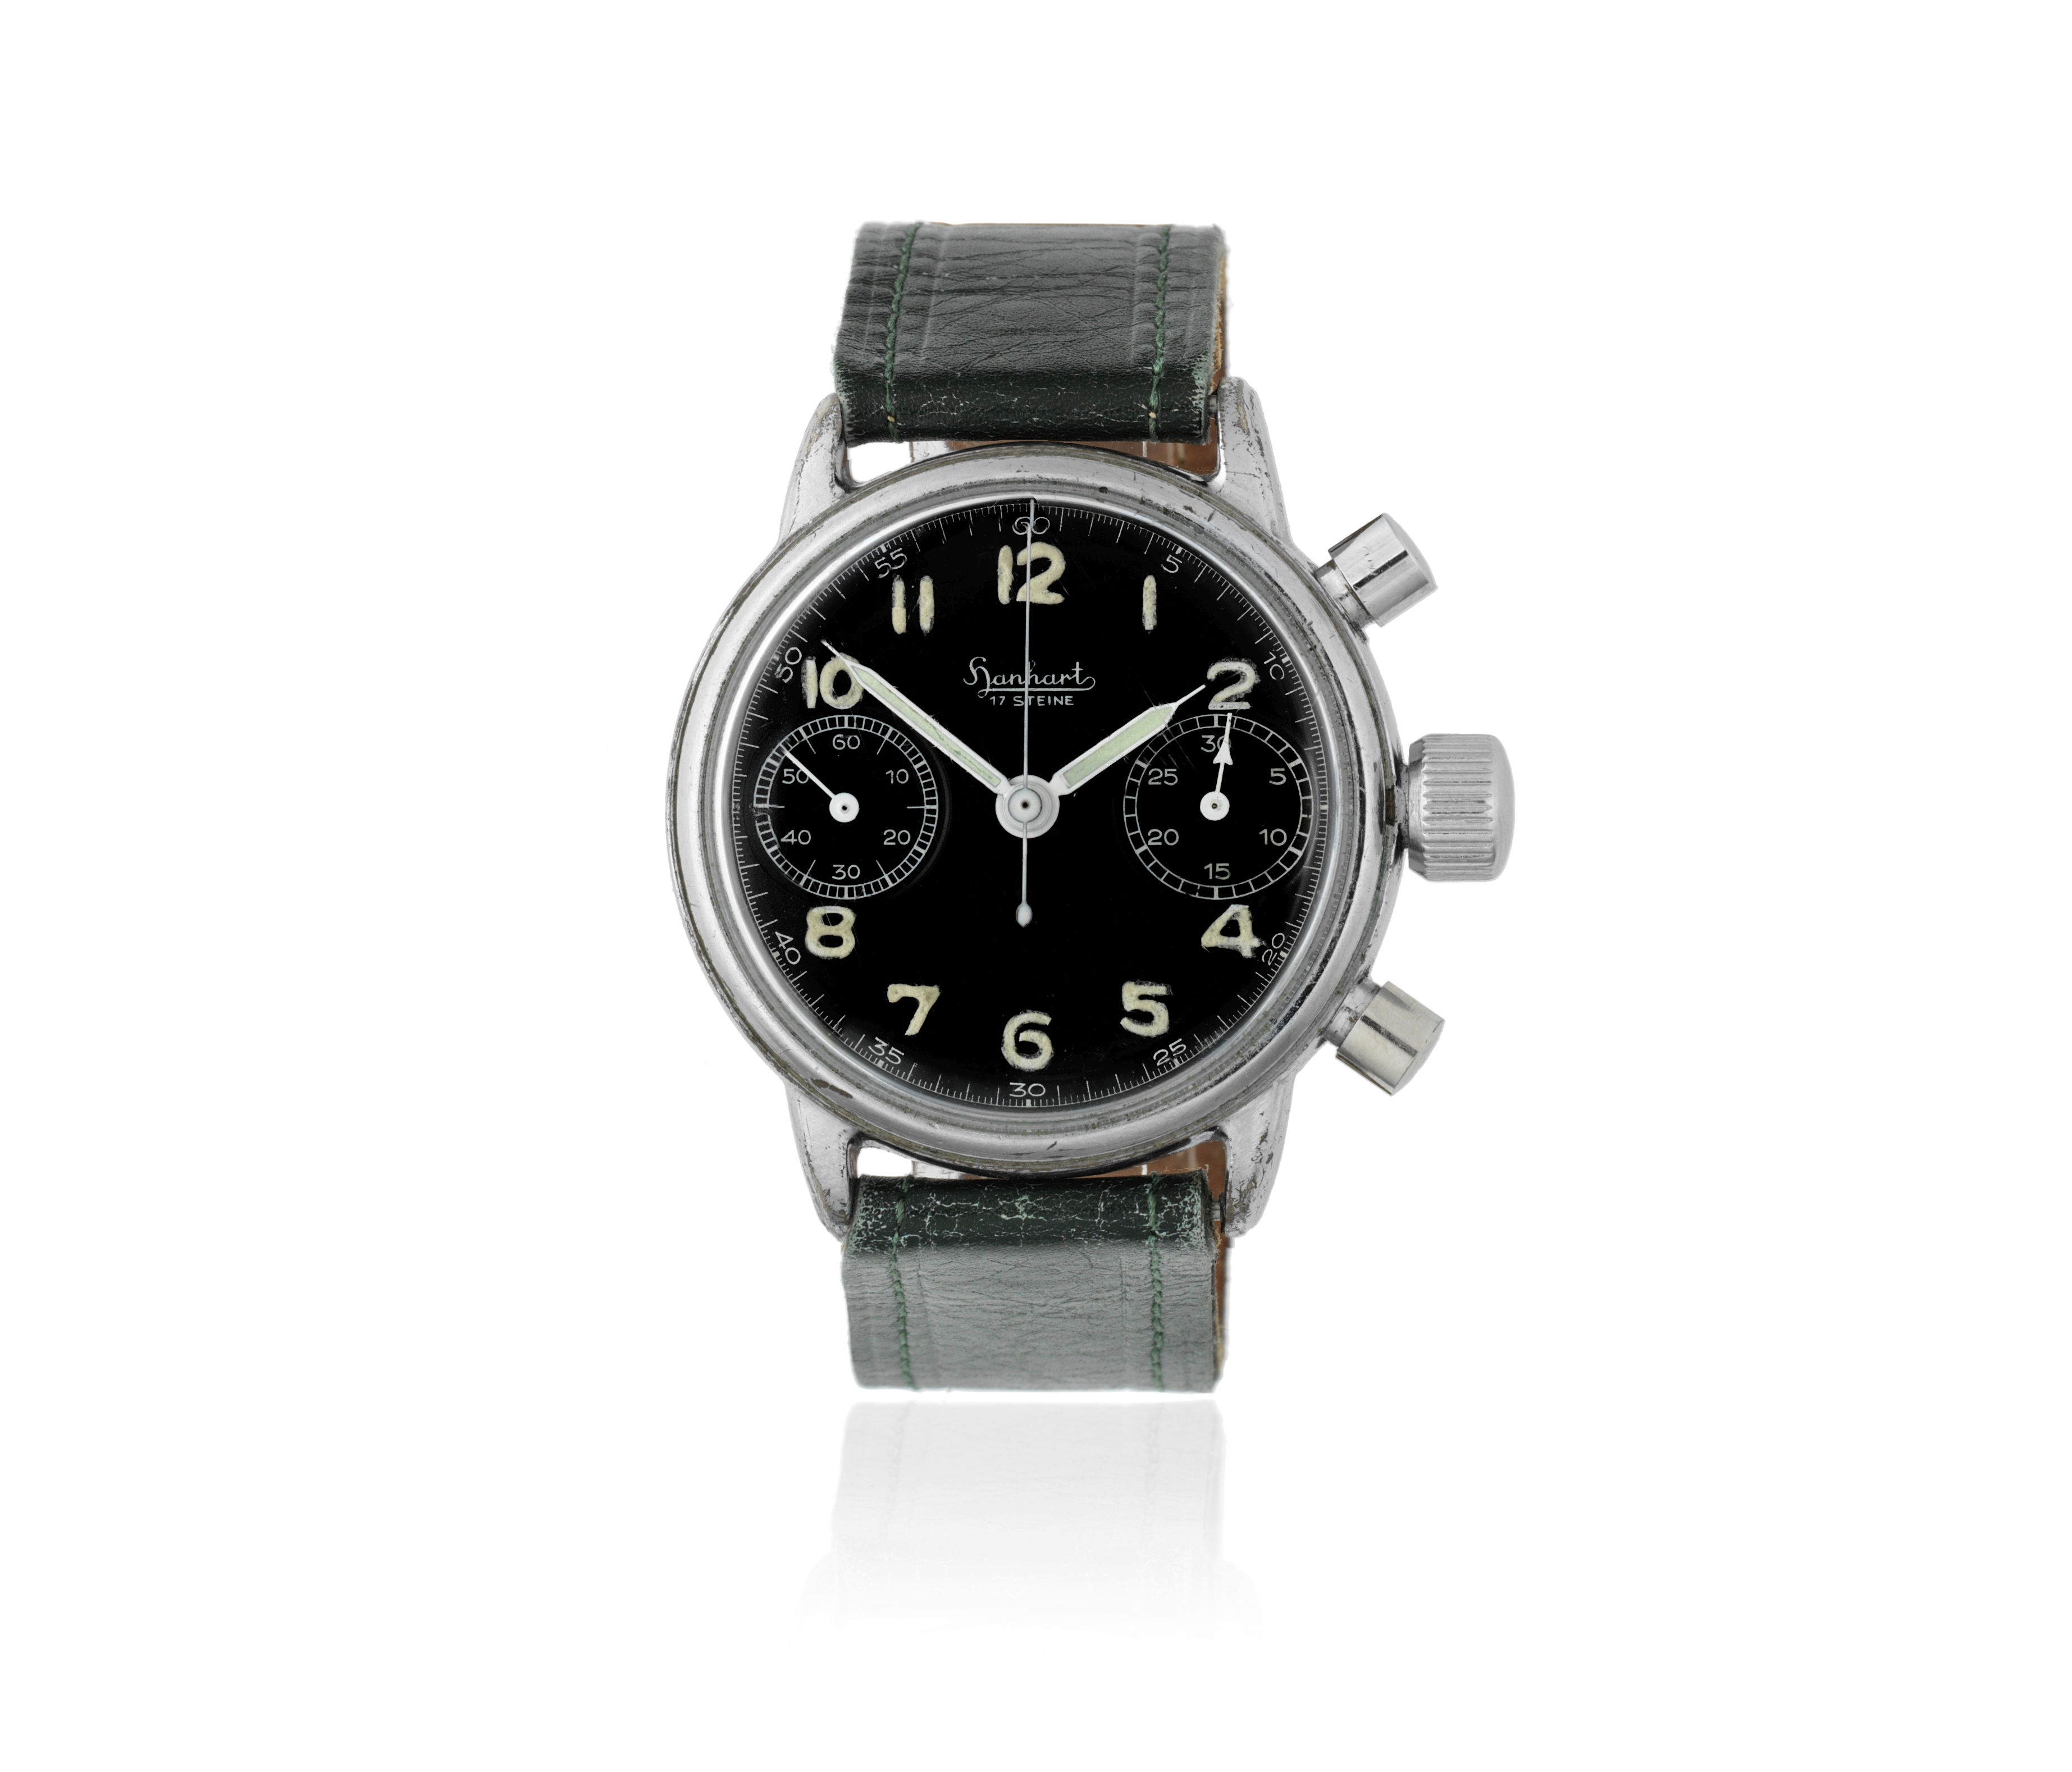 Lot 97 - Hanhart. A nickel plated manual wind chronograph military wristwatch Circa 1960